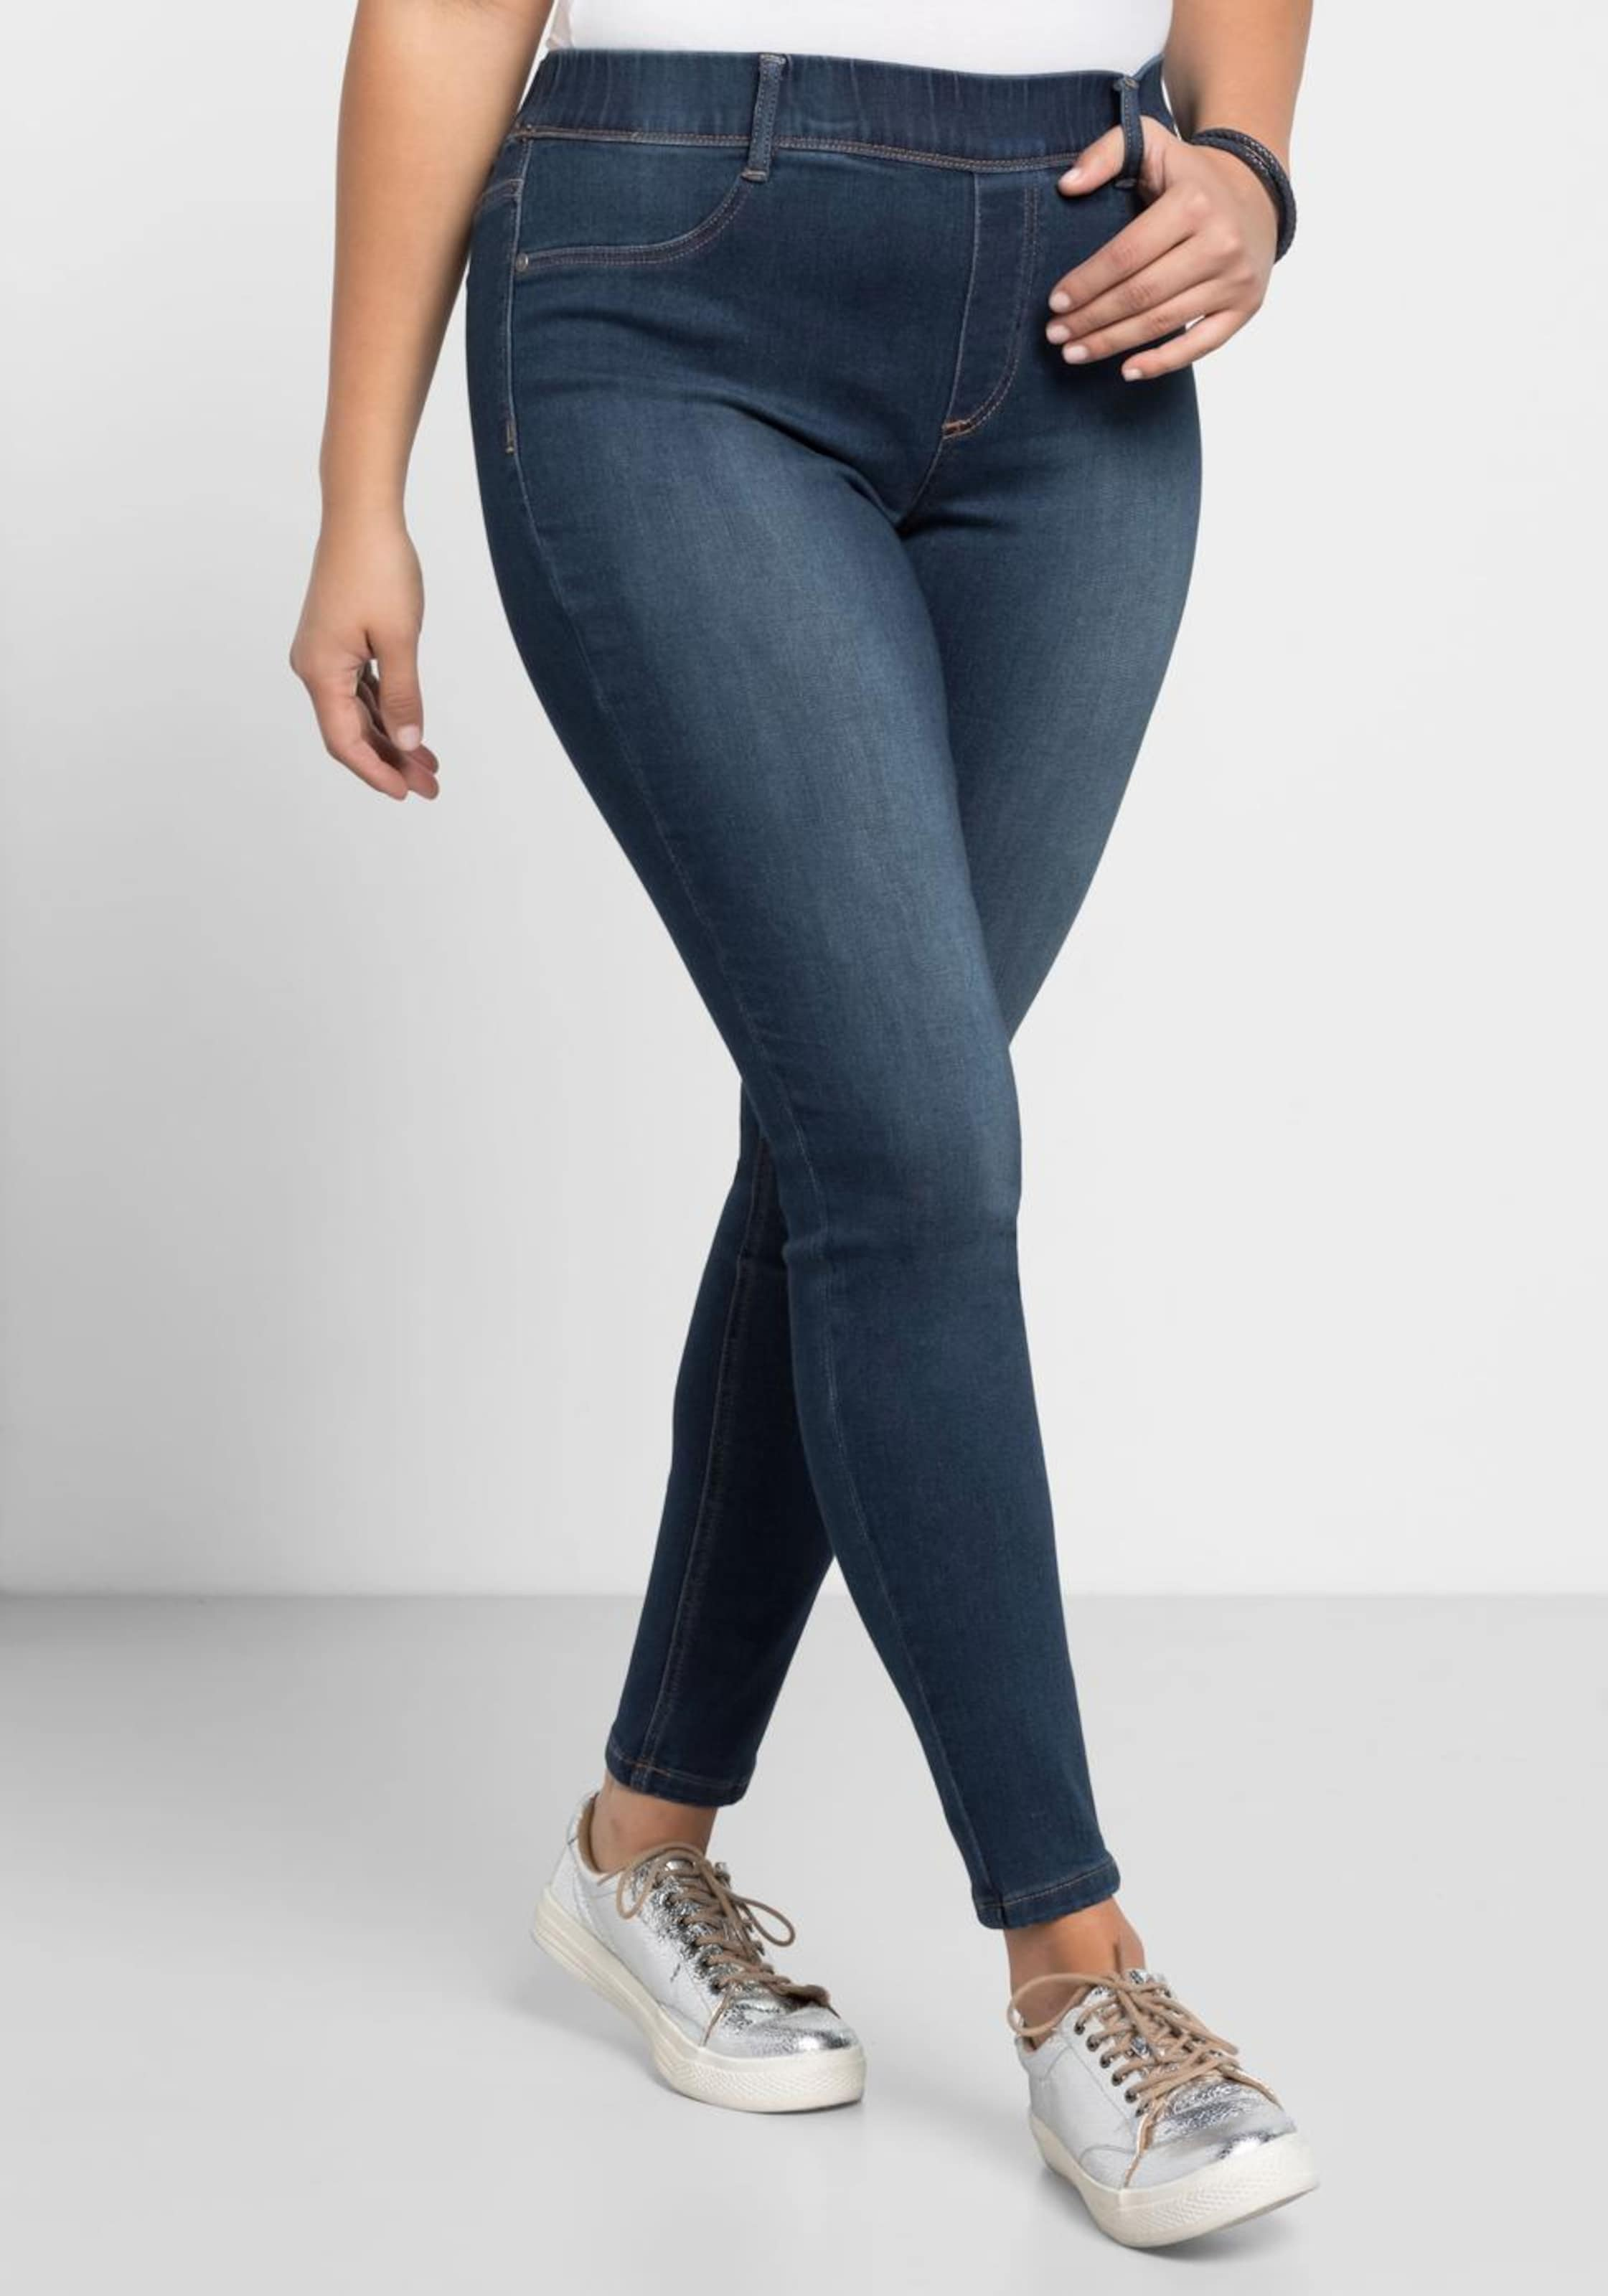 Denim 'die In Stretchjeans Blue Biker' Sheego L3R4A5j